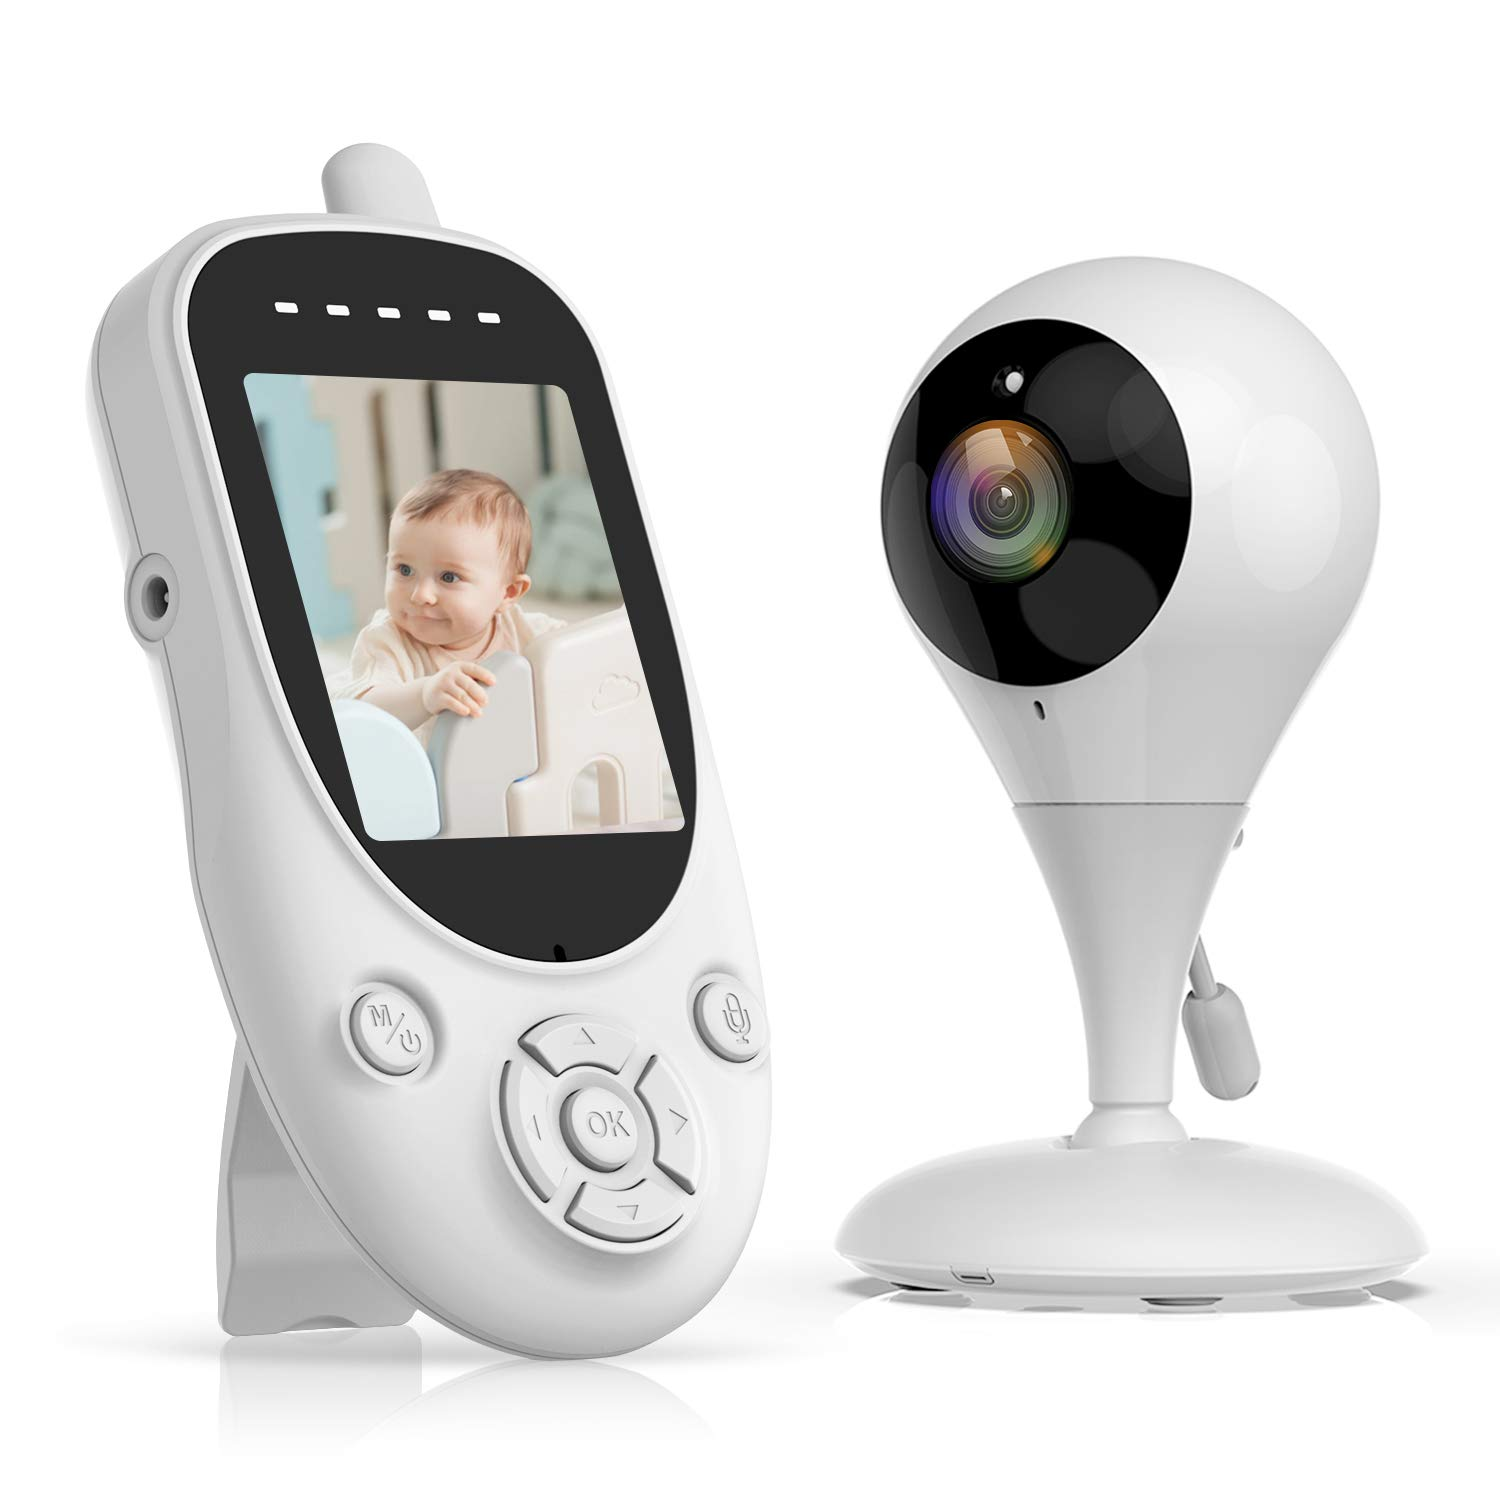 Campark Video Baby Monitor with 2.4GHz Wireless Digital Camera, 1000ft Range Transmission, Auto Night Vision, 2-Way Talk, VOX and Lullabies